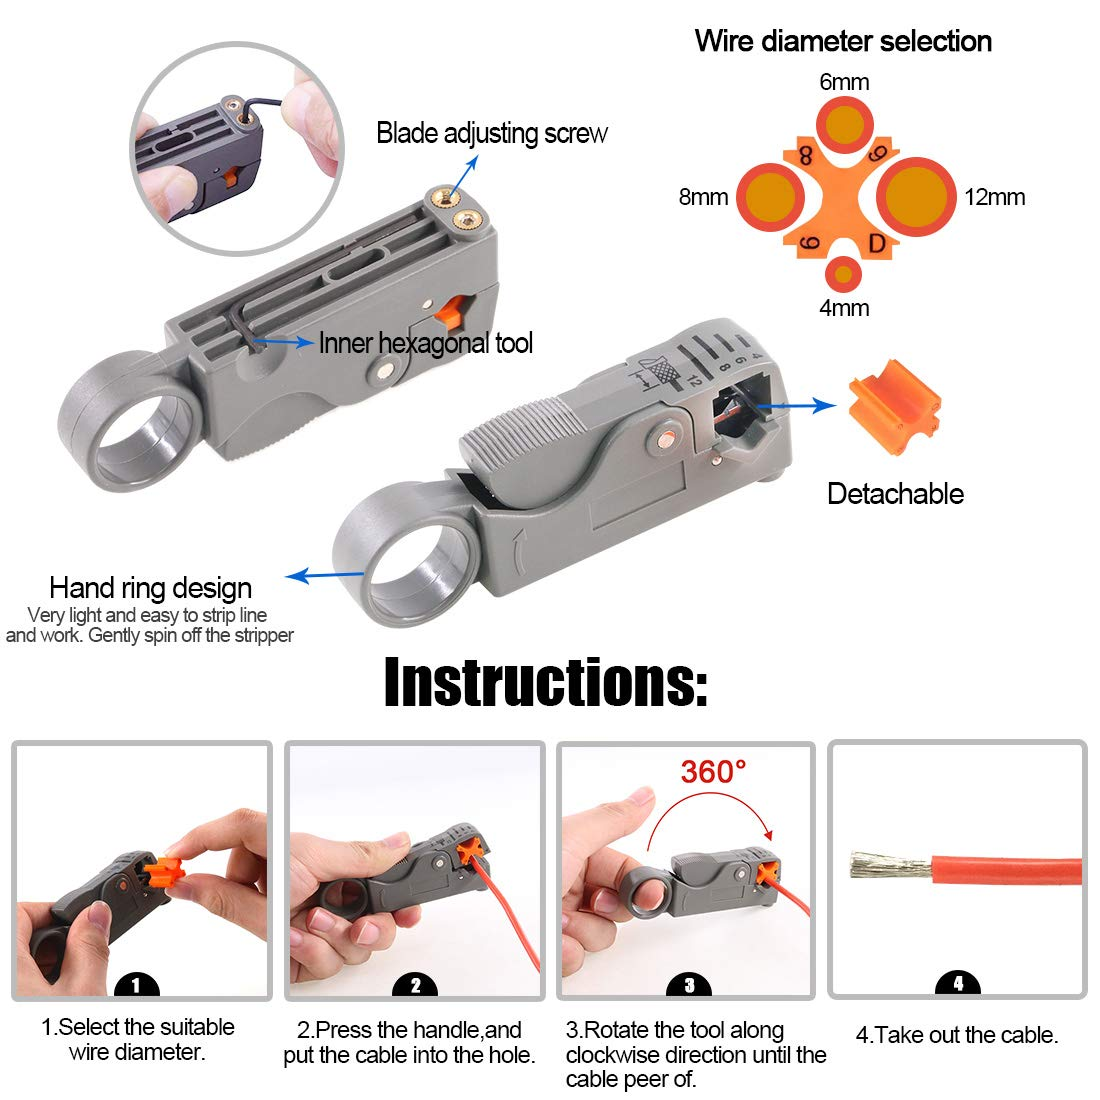 Glarks Coaxial Cable Tool Set, Coax RF Connector Crimping Tool + Coaxial Cable Stripper + BNC/UHF Crimp Male Connectors + Wire Cutter + Screw Driver for RG58, RG59, RG62, RG174 by Glarks (Image #5)